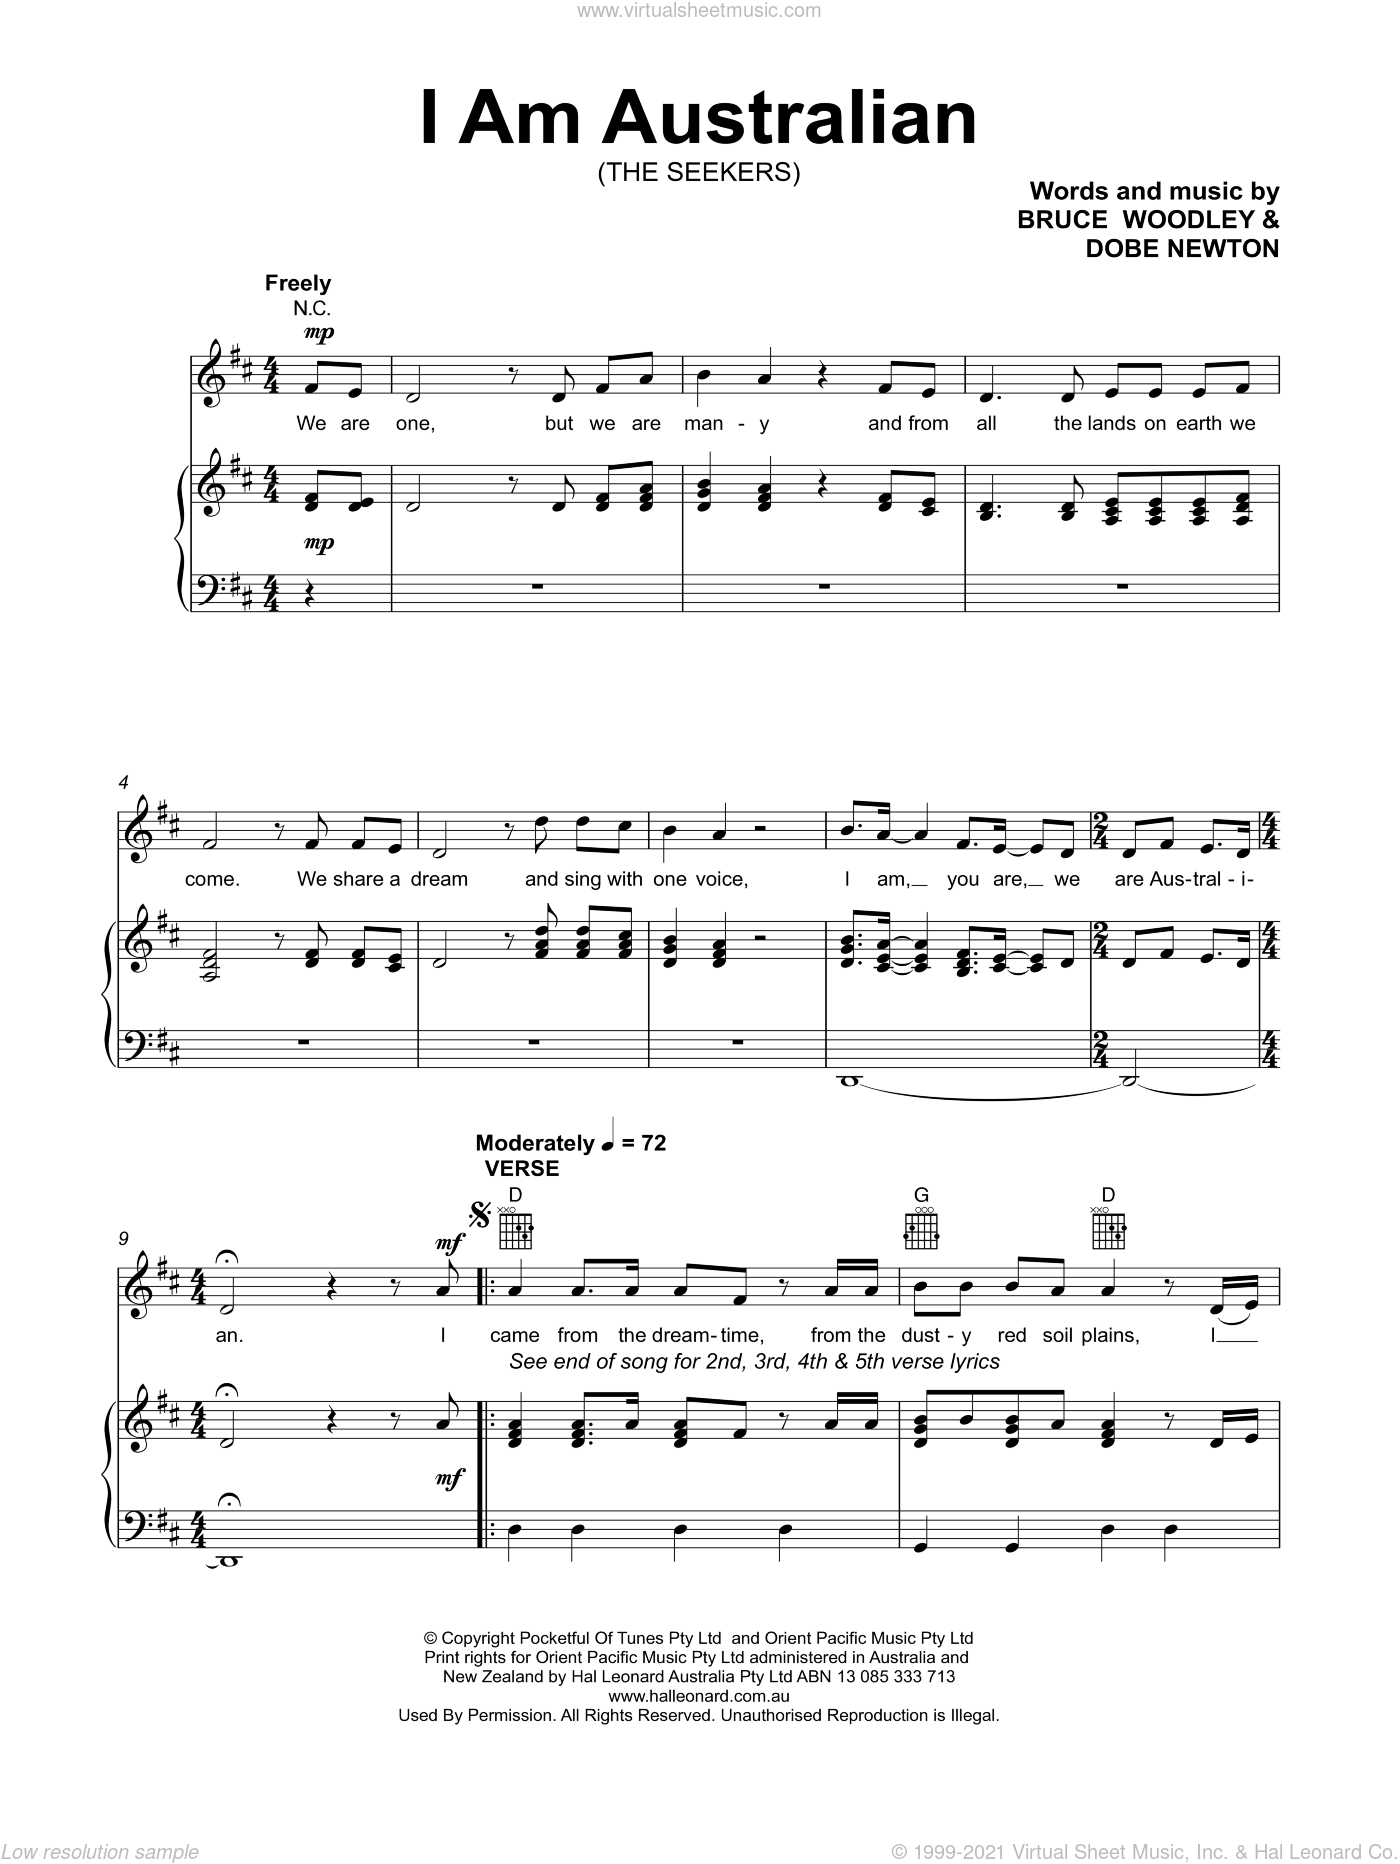 I Am Australian sheet music for voice, piano or guitar by The Seekers, Bruce Woodley and Dobe Newton, intermediate skill level